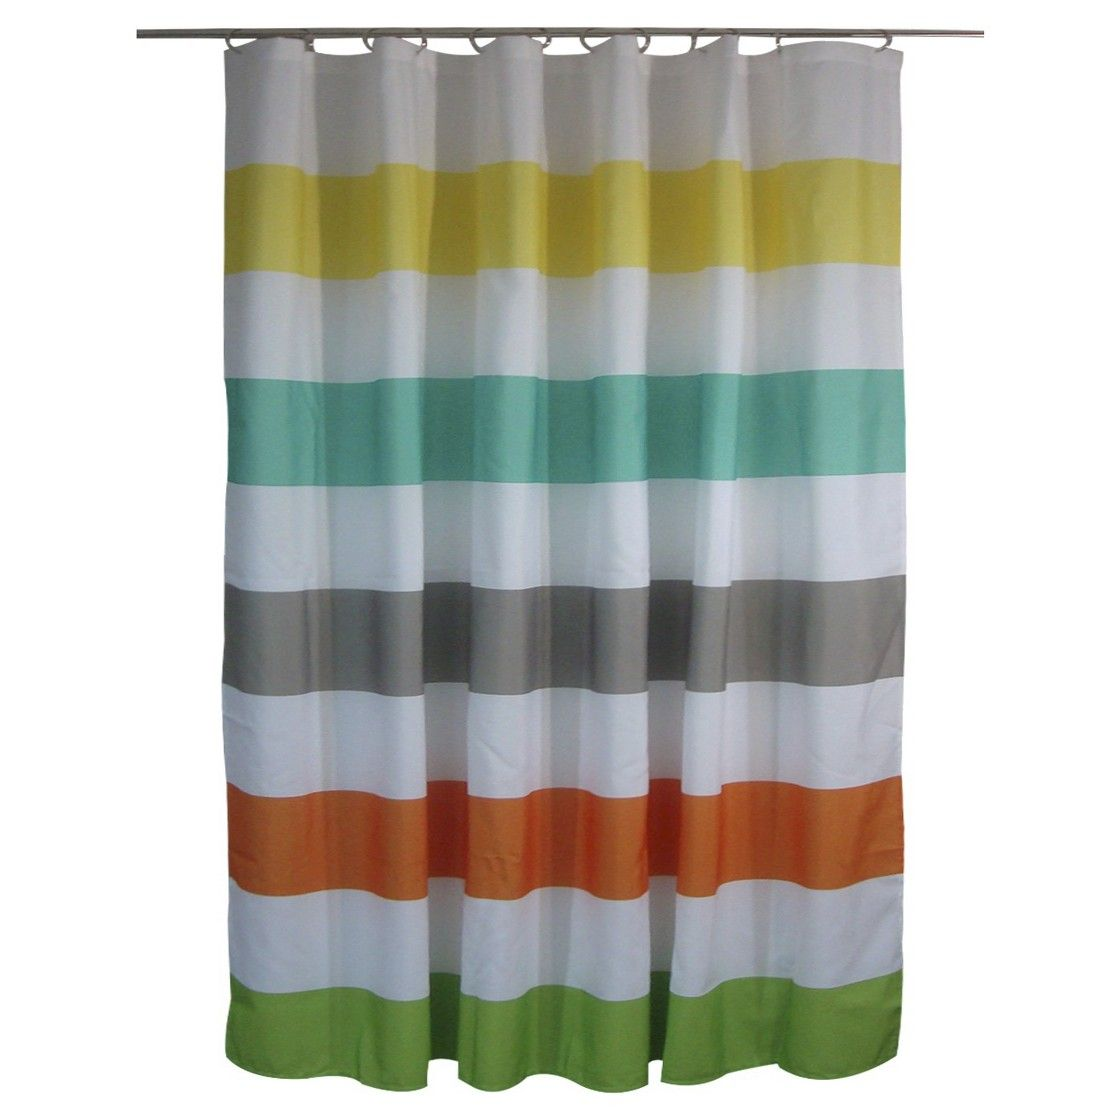 Product - megasmm.gqltex Nautical Blackout Curtains(2 PANELS), Room Darkning, Grommet Top, Light Blocking Curtains, 52W by 84L Inch, Wave Stripes Pattern, Gray, Sold by Pair Product Image Price.